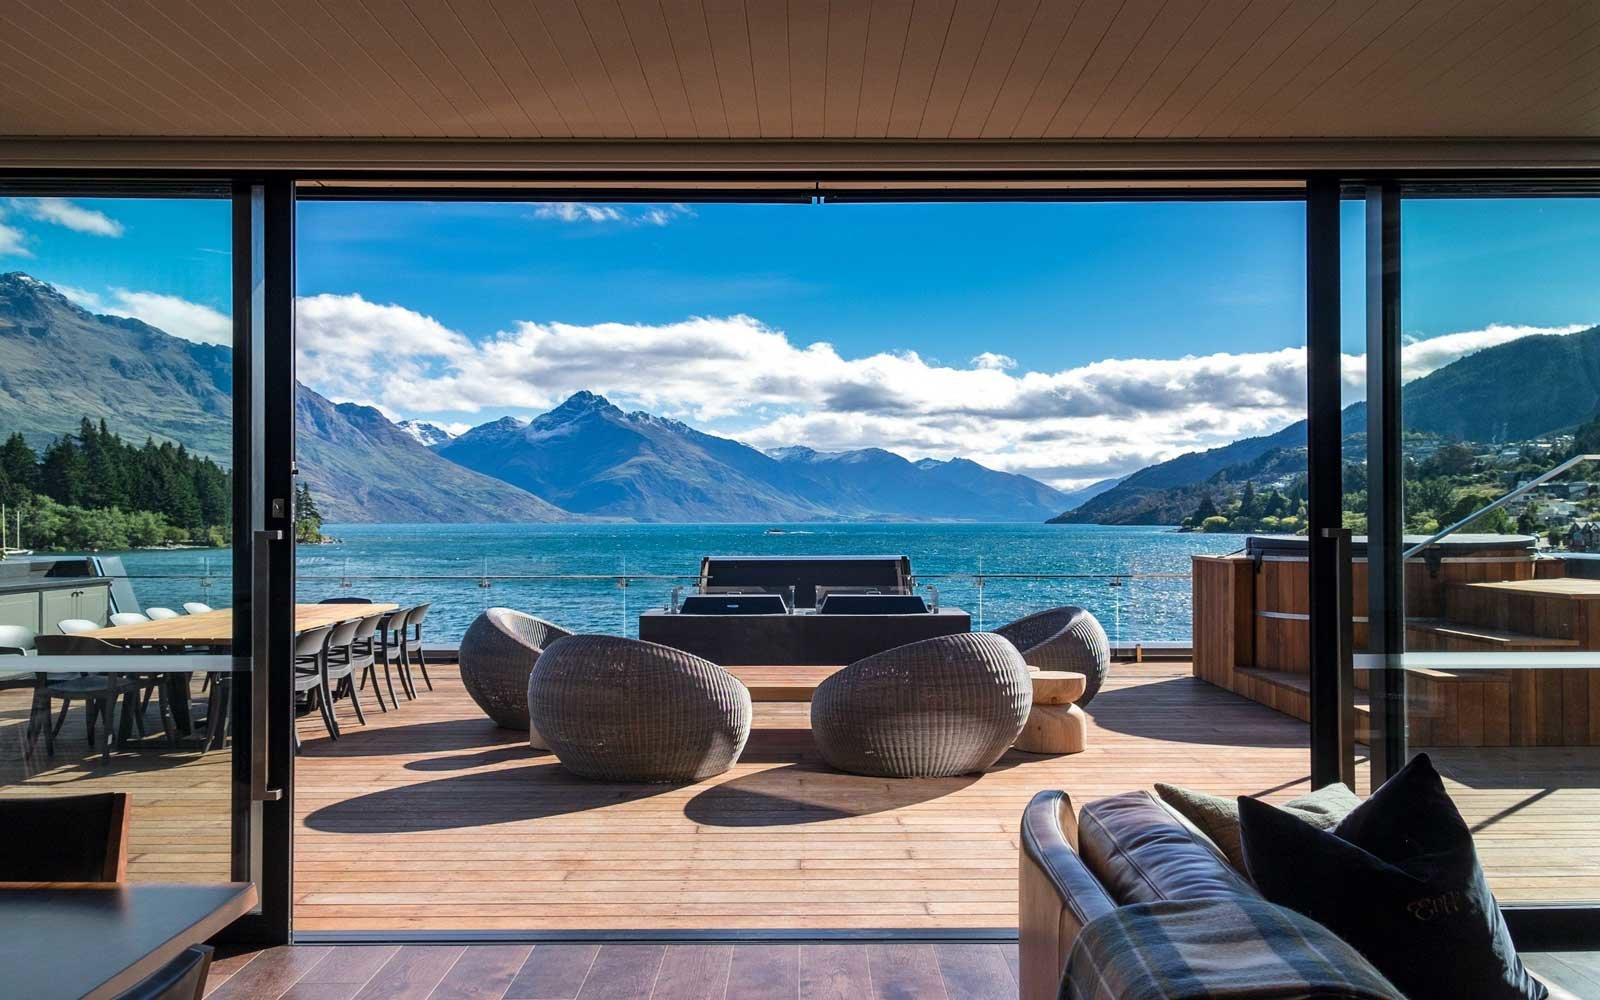 This luxurious New Zealand hotel only has 13 rooms — all with stunning views